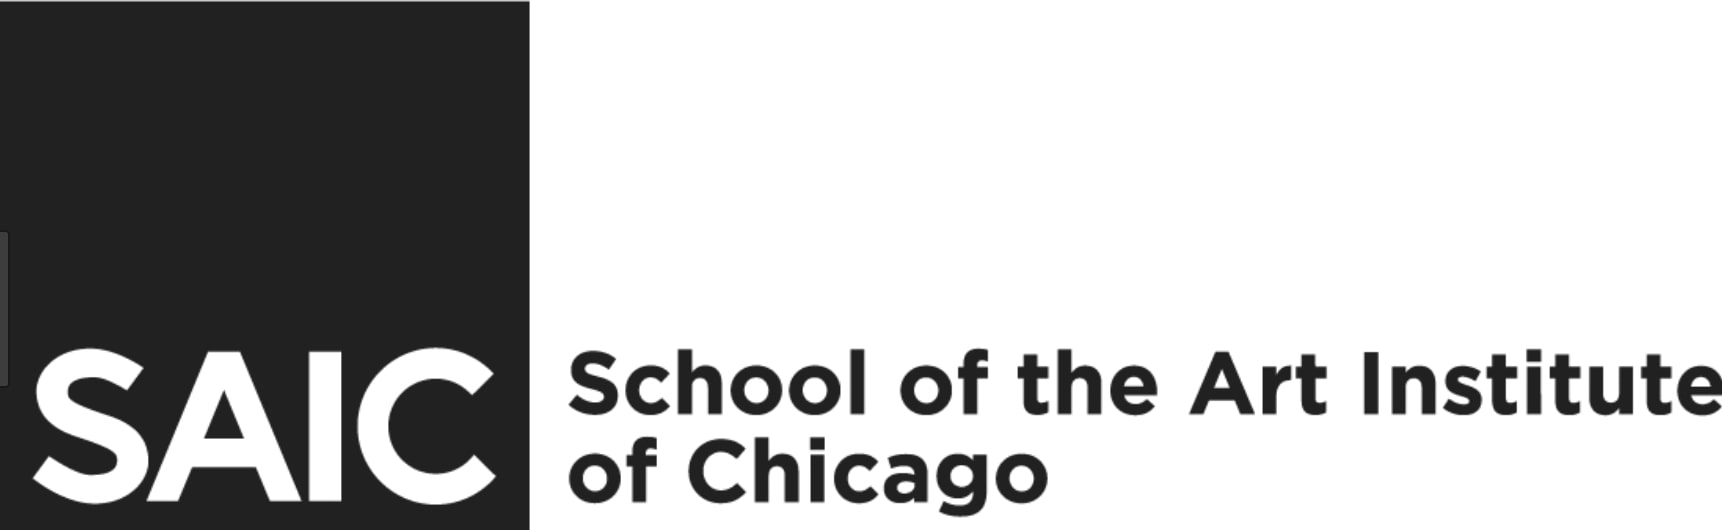 Escuela del Instituto de Arte de Chicago.